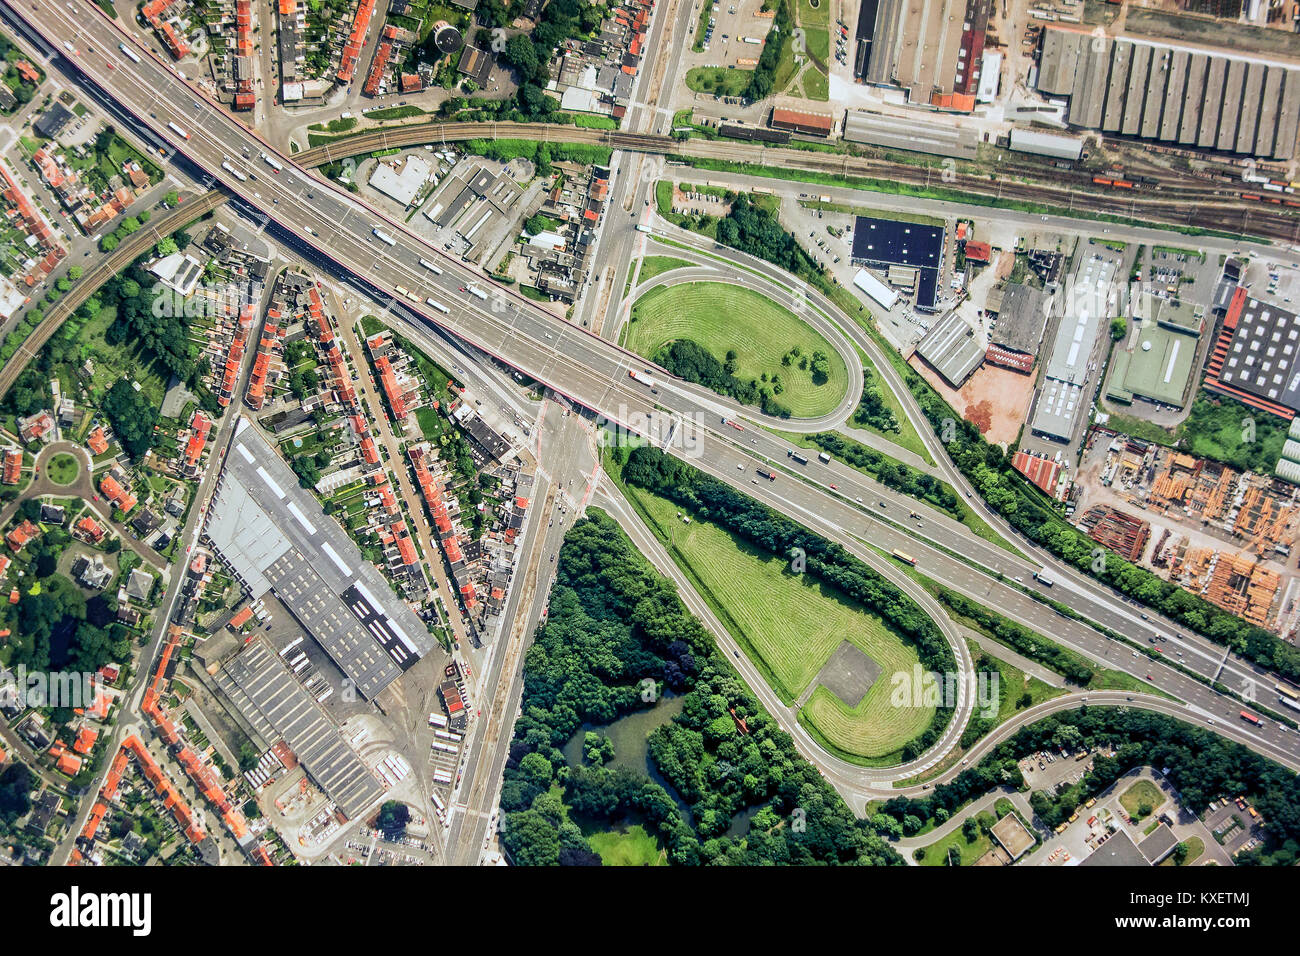 Aerial view over ribbon building and highway interchange / motorway interchange with slip roads leading to industrial - Stock Image